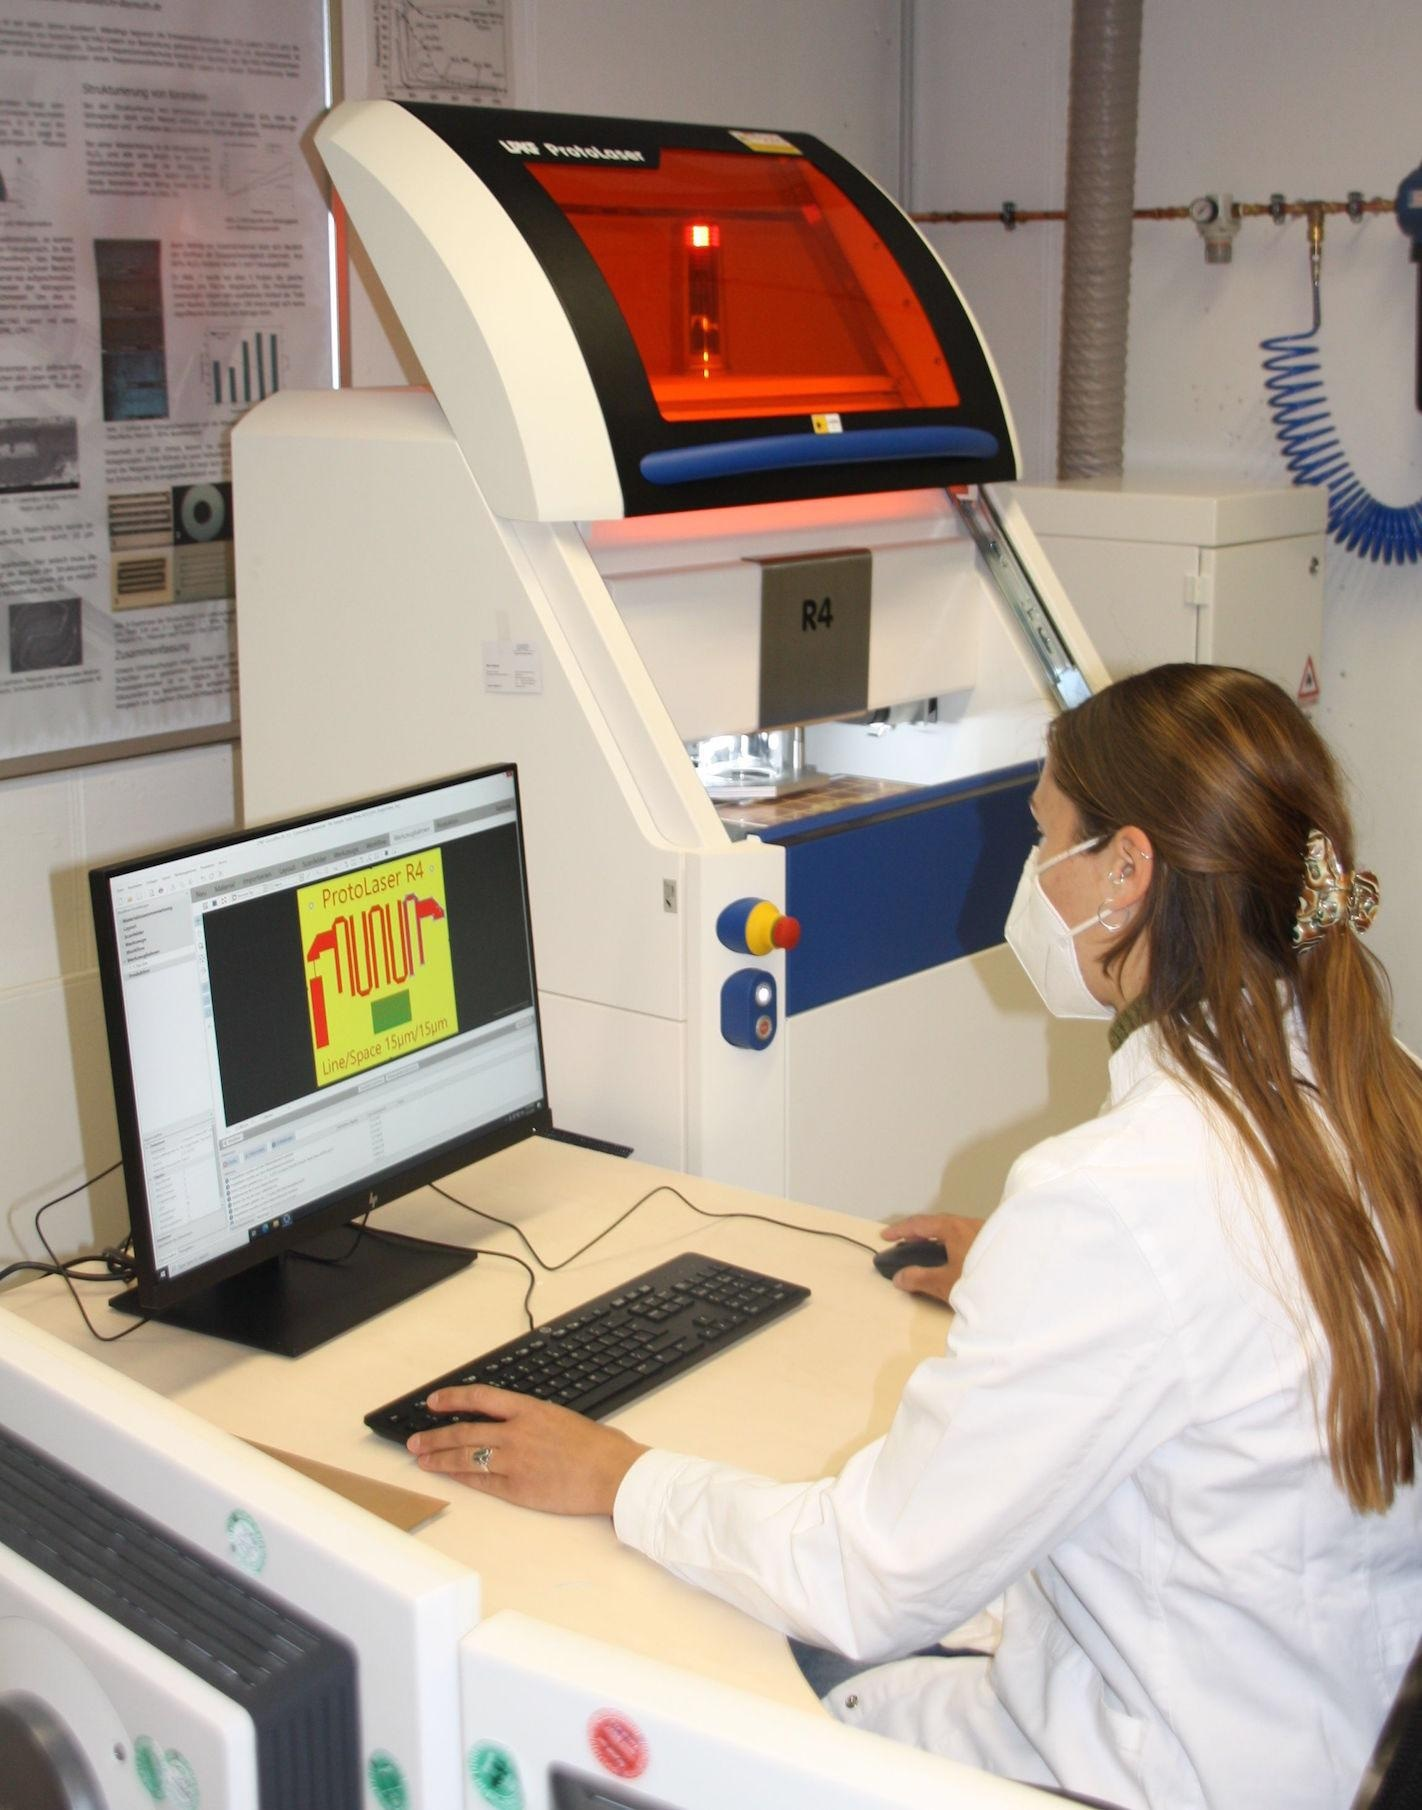 New Device Uses Ultra-Short Pulse Laser Source for Material Processing.